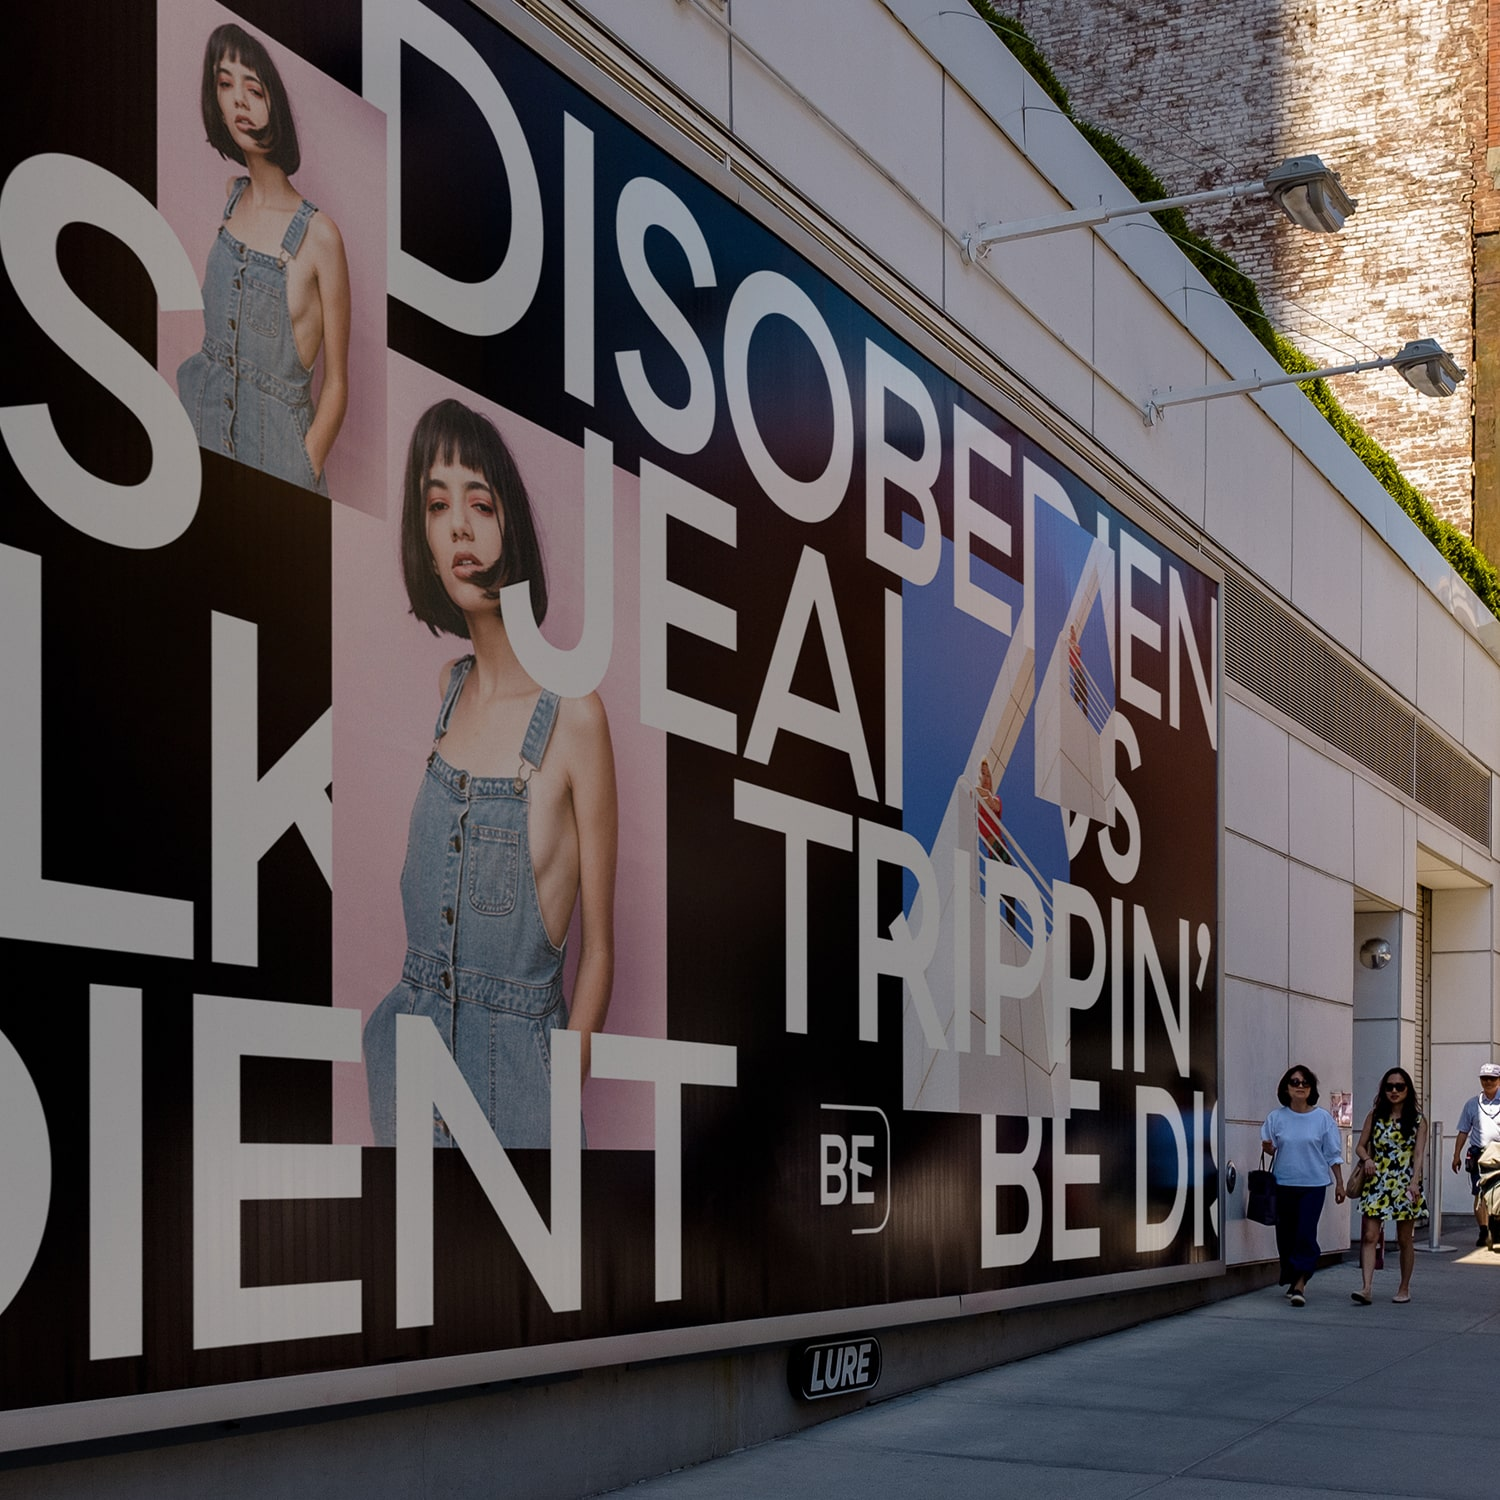 Be Disobedient logo and brand billboard